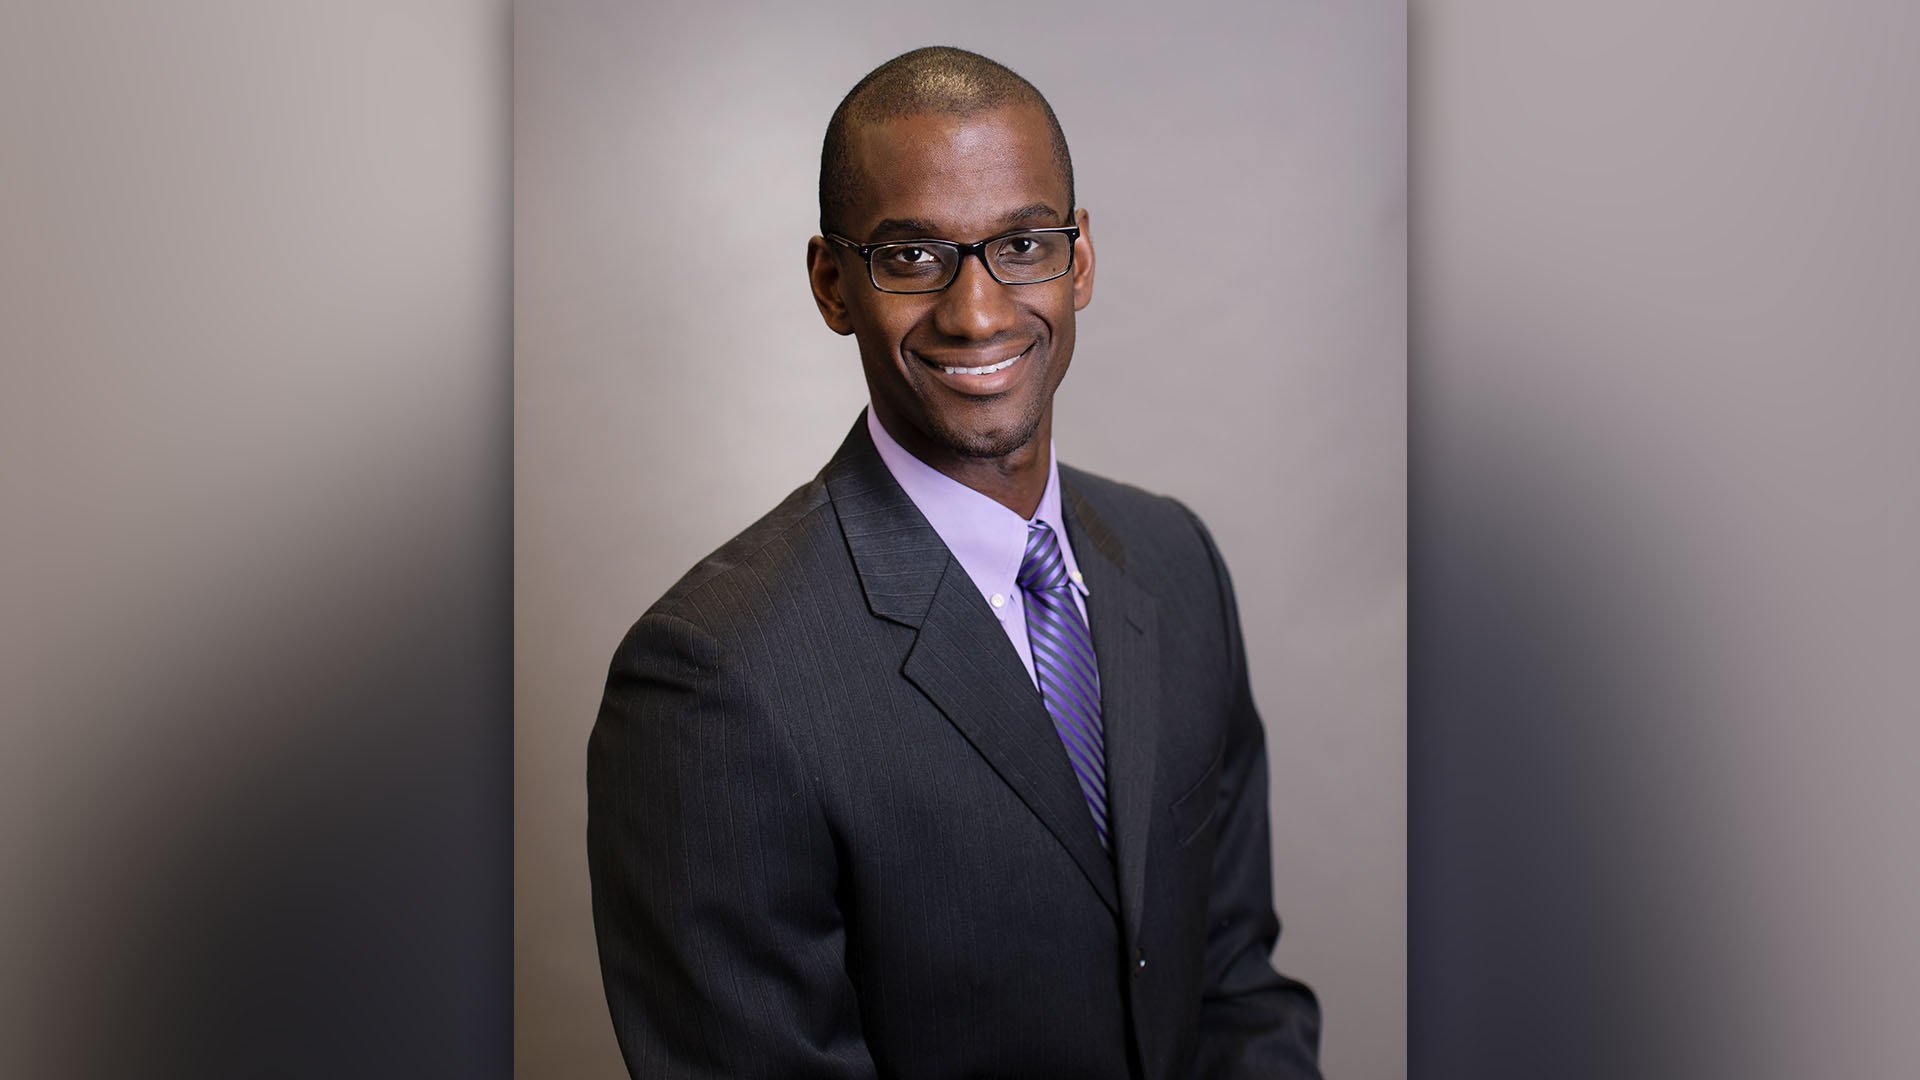 Texas PTA recently announced Cain Middle School Principal Derrice Randle as this year's Secondary Principal of the Year.